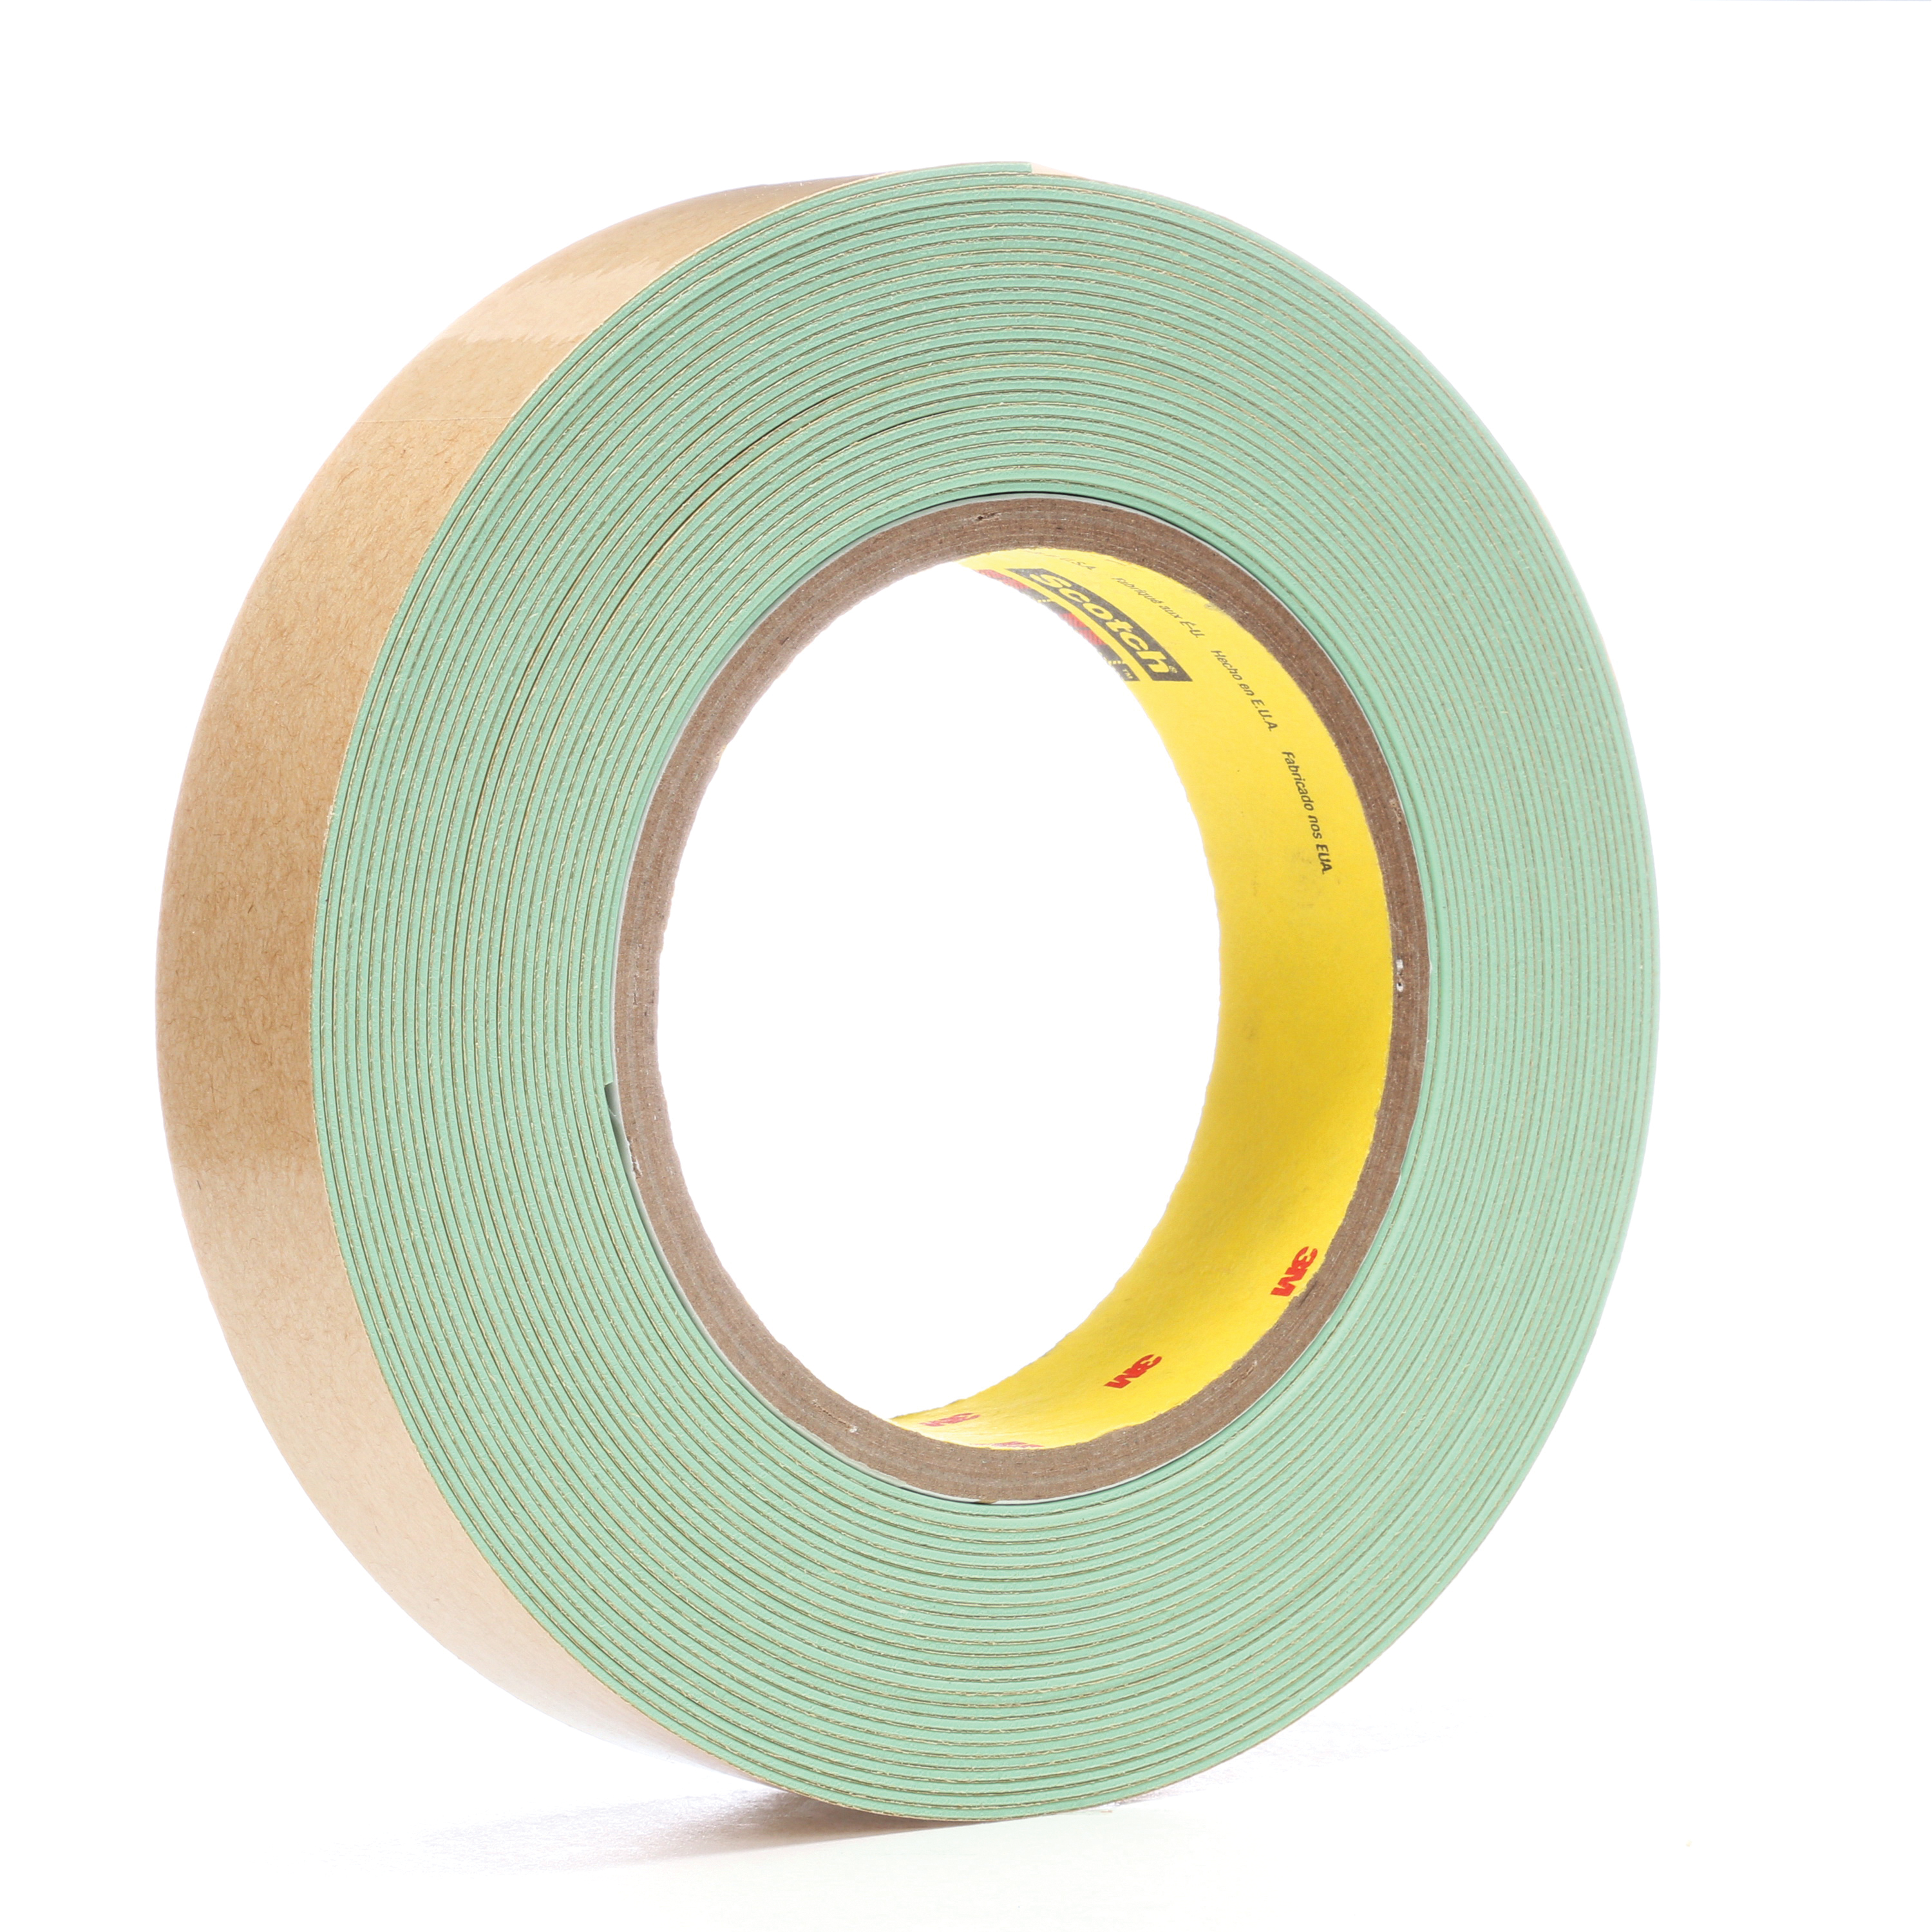 3M™ 021200-60894 Impact Stripping Tape, 10 yd L x 1 in W, 36 mil THK, Acrylic Adhesive, Rubber Backing